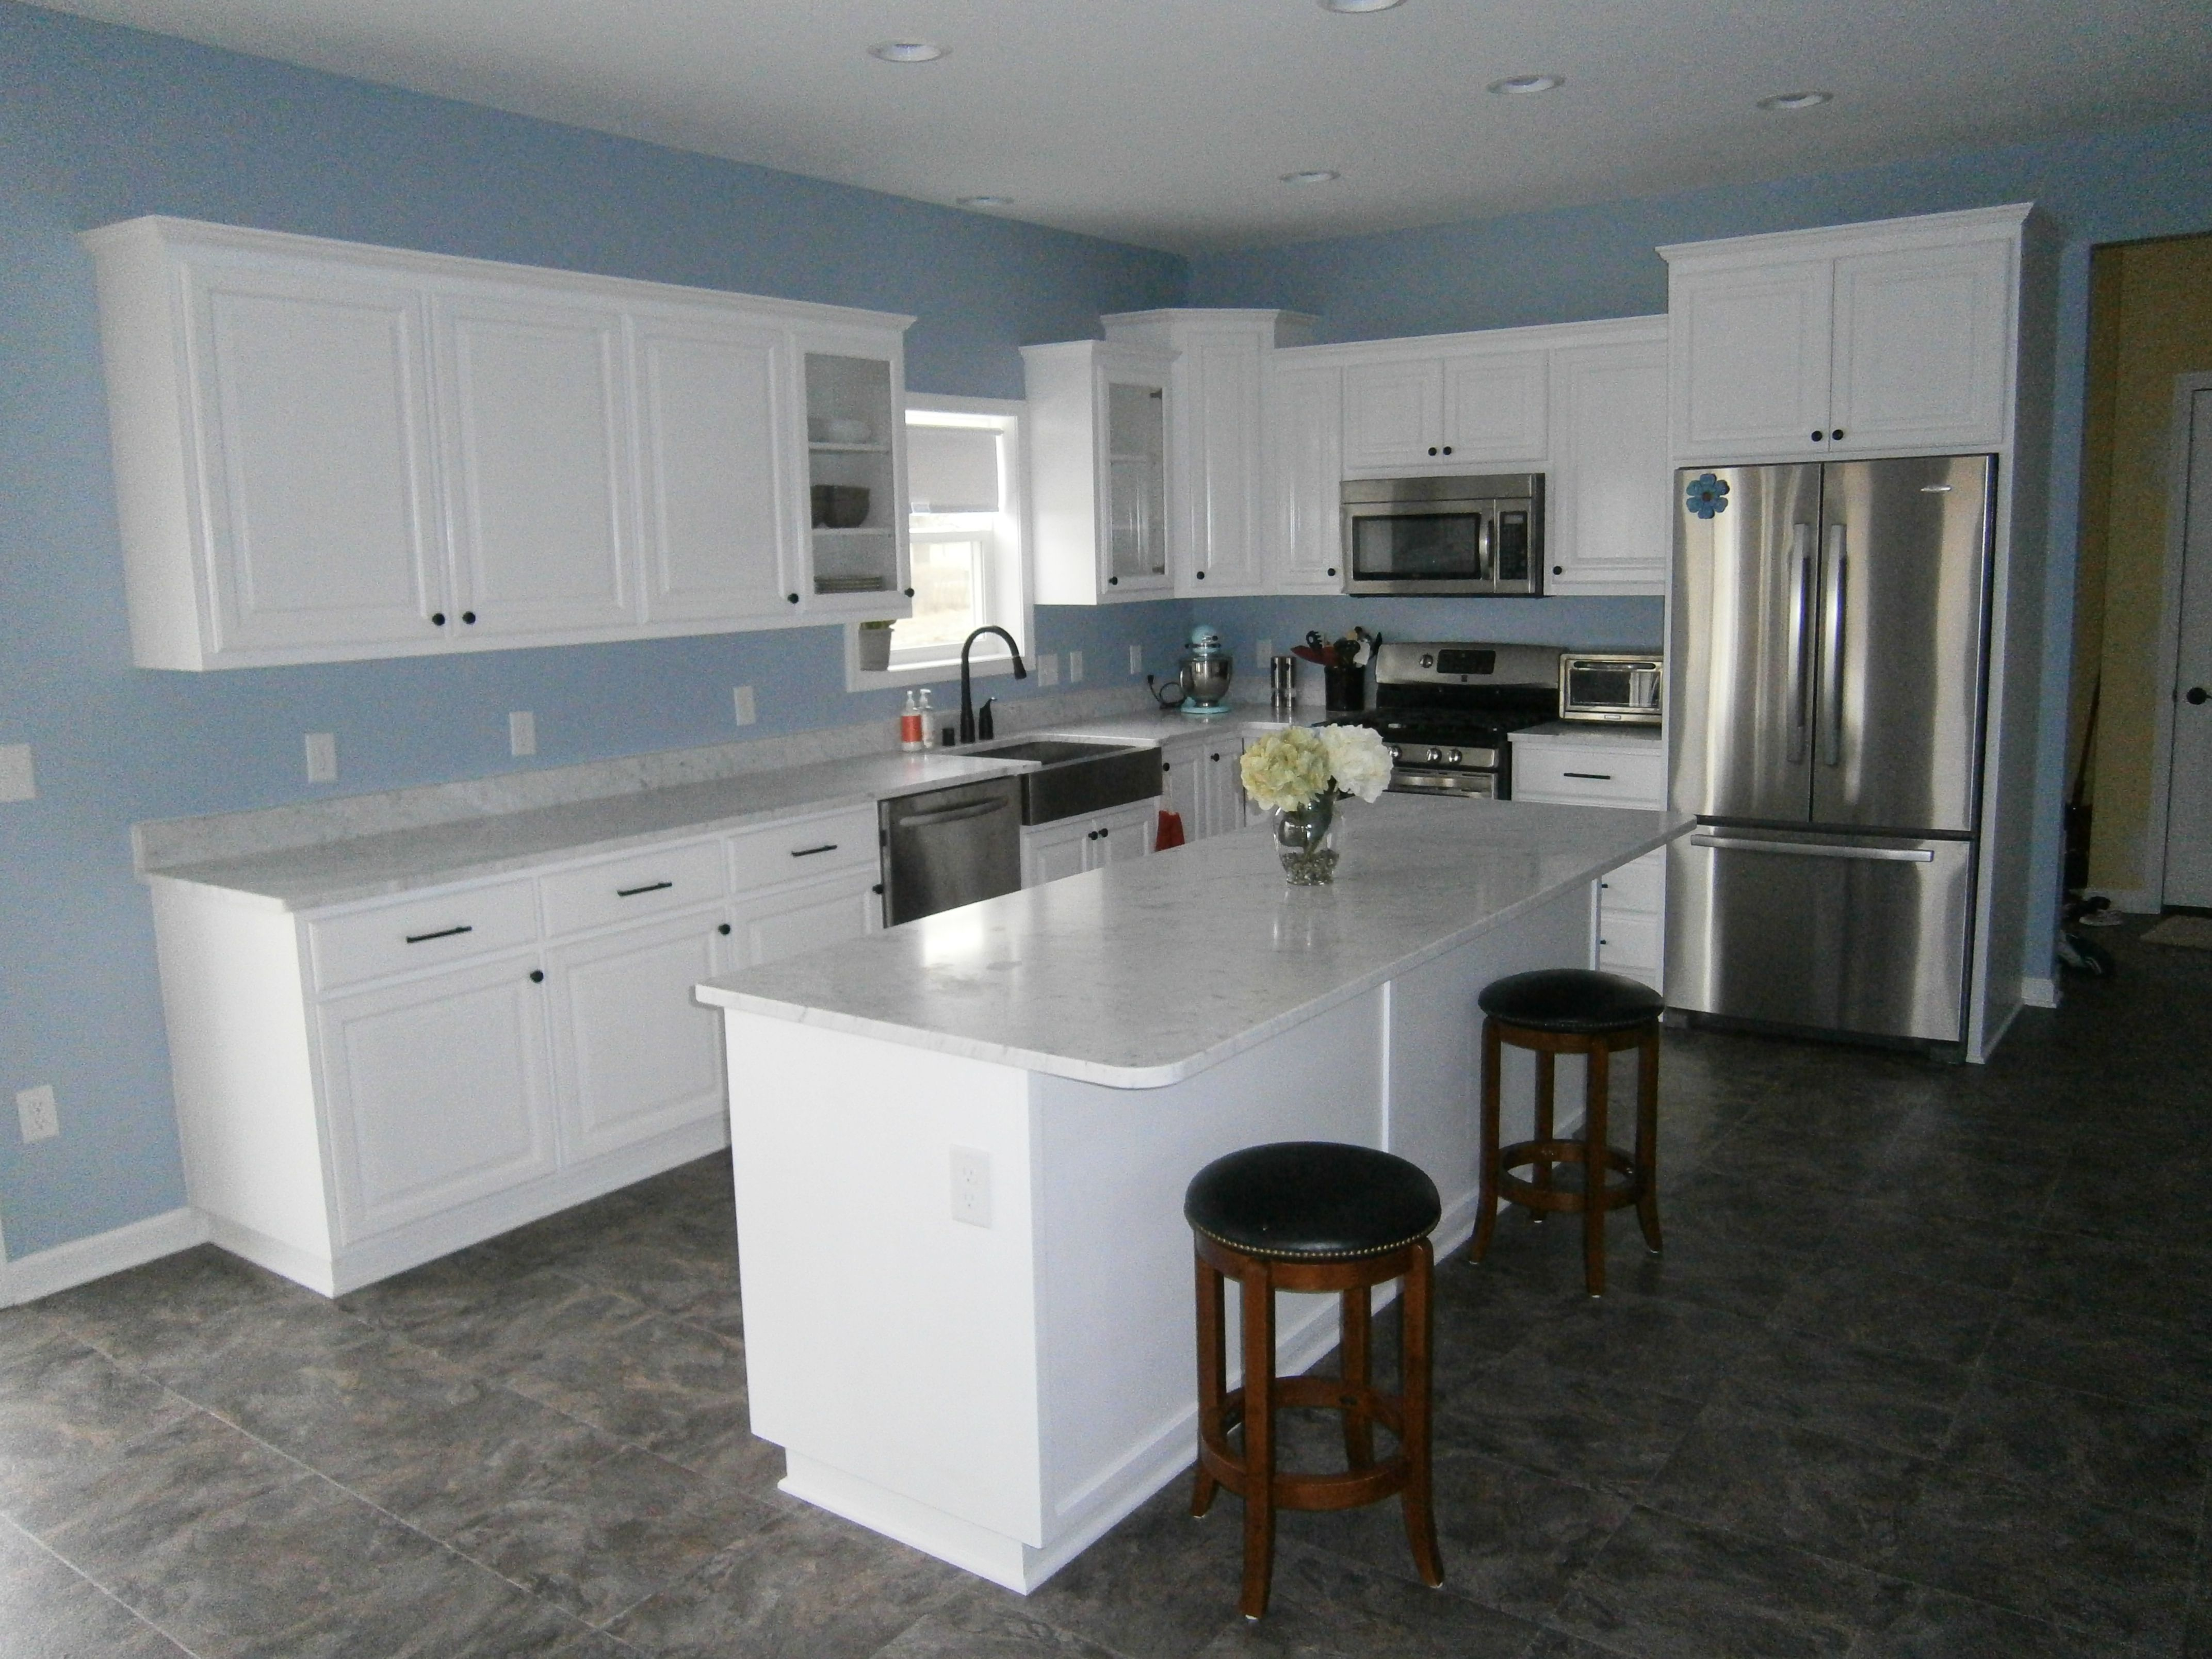 Bathroom Remodeling Milwaukee Exterior a simple color palette really brings this kitchen to life!tek